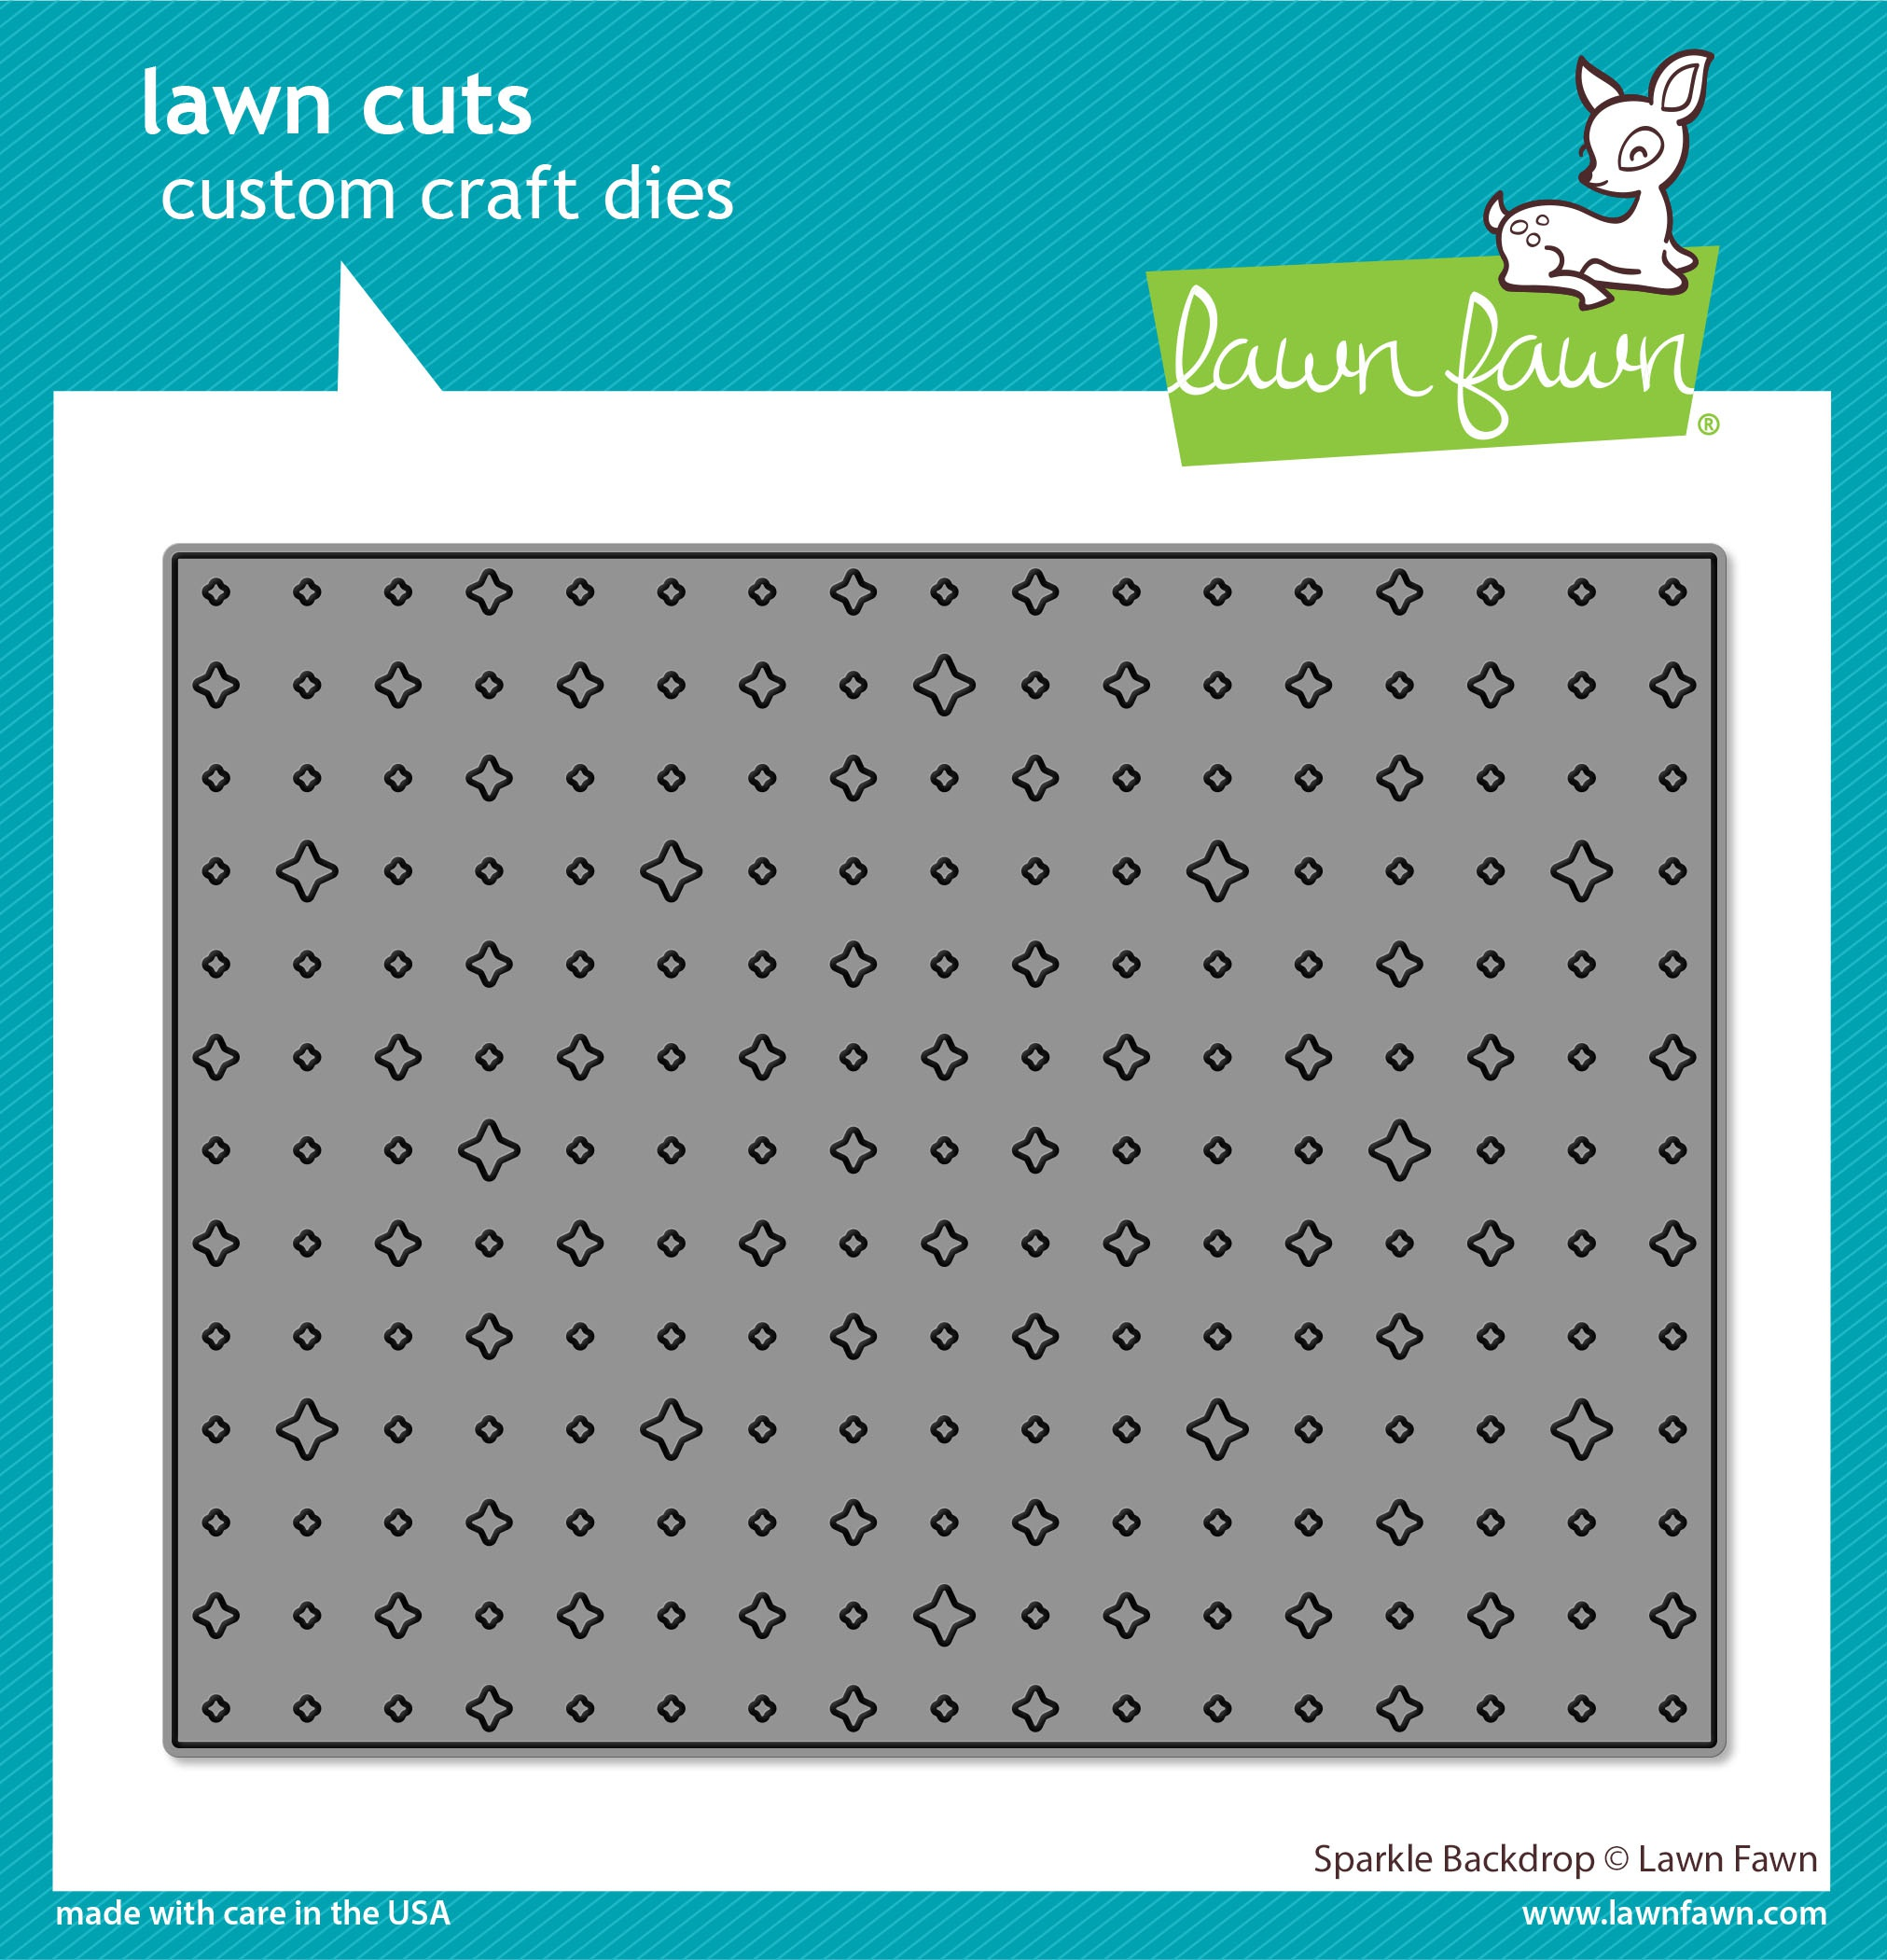 Lawn Cuts Custom Craft Die -Sparkle Backdrop